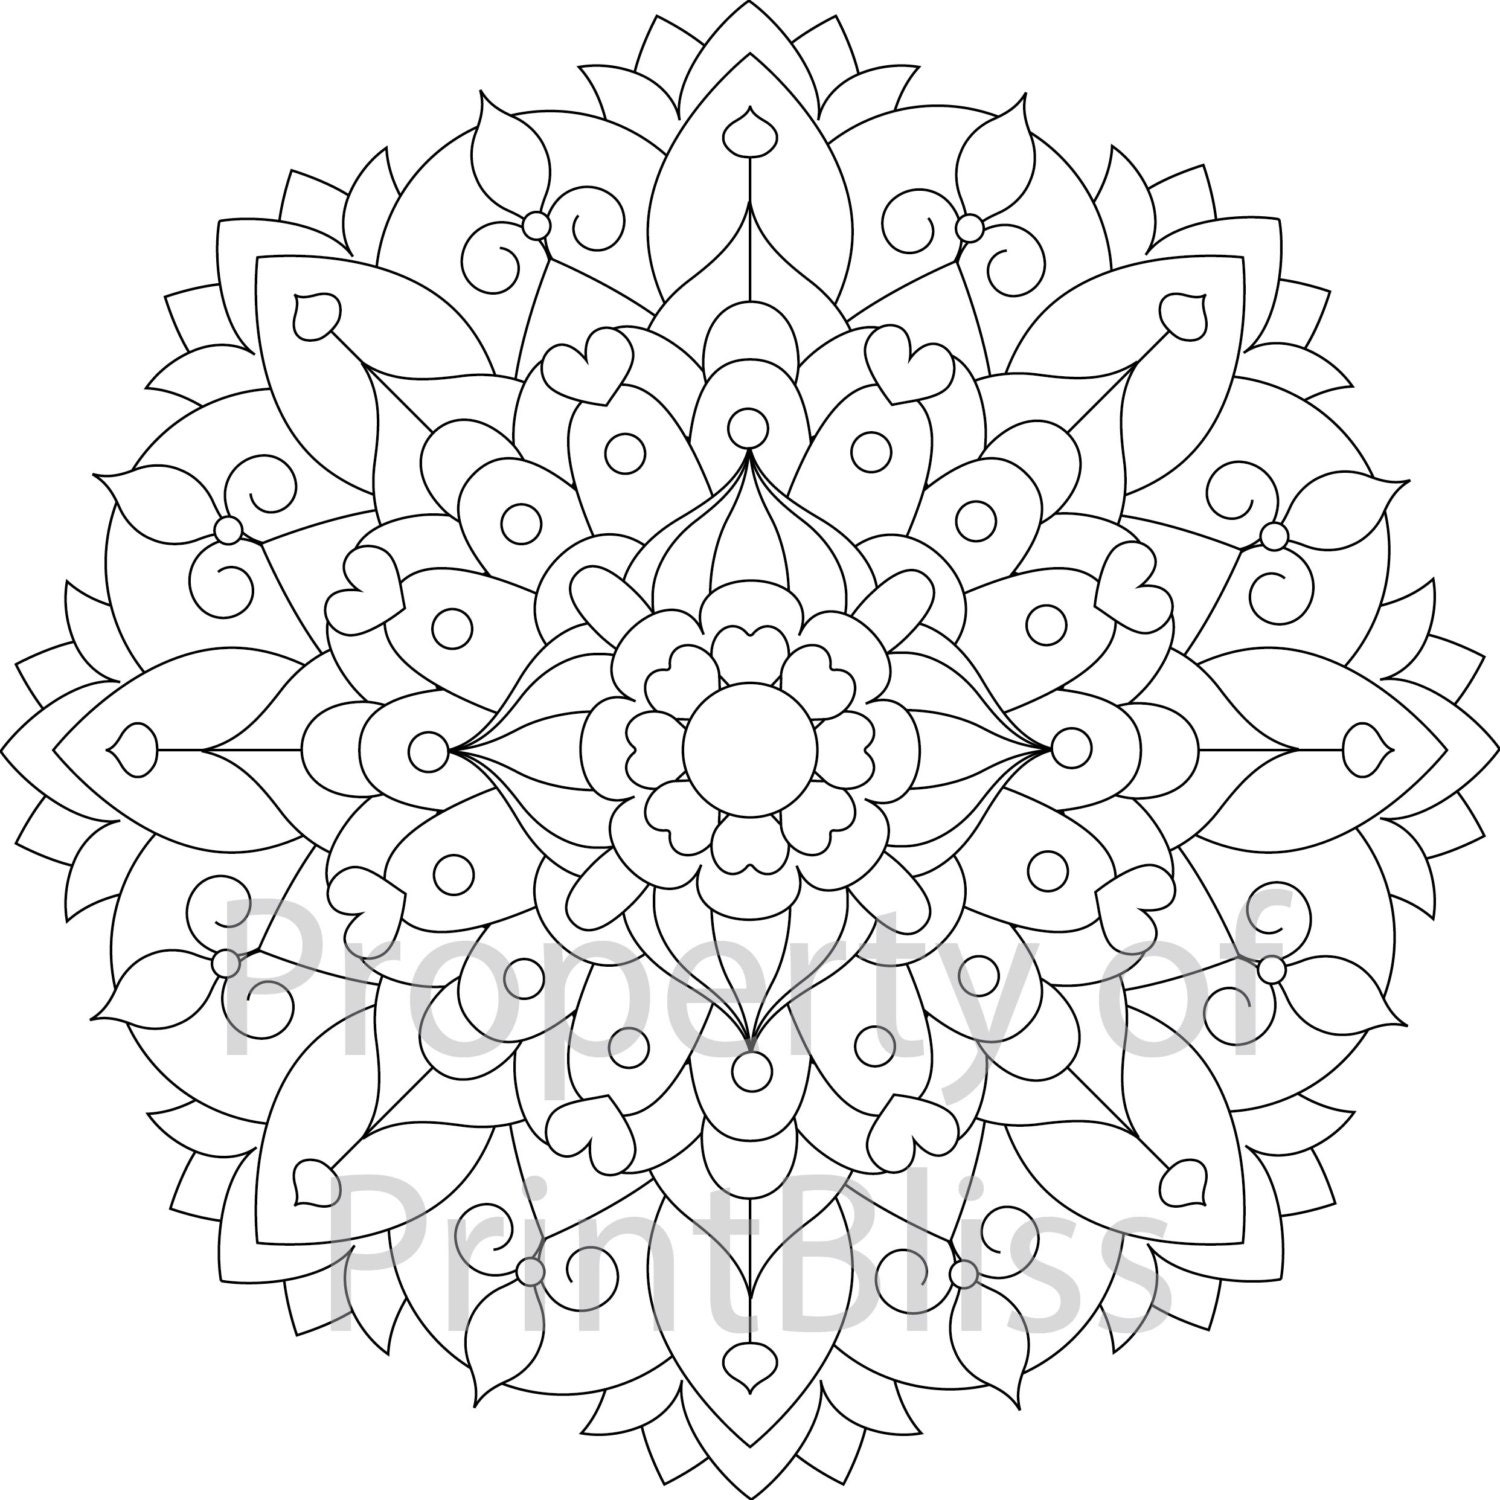 14 flower mandala printable coloring page. Black Bedroom Furniture Sets. Home Design Ideas